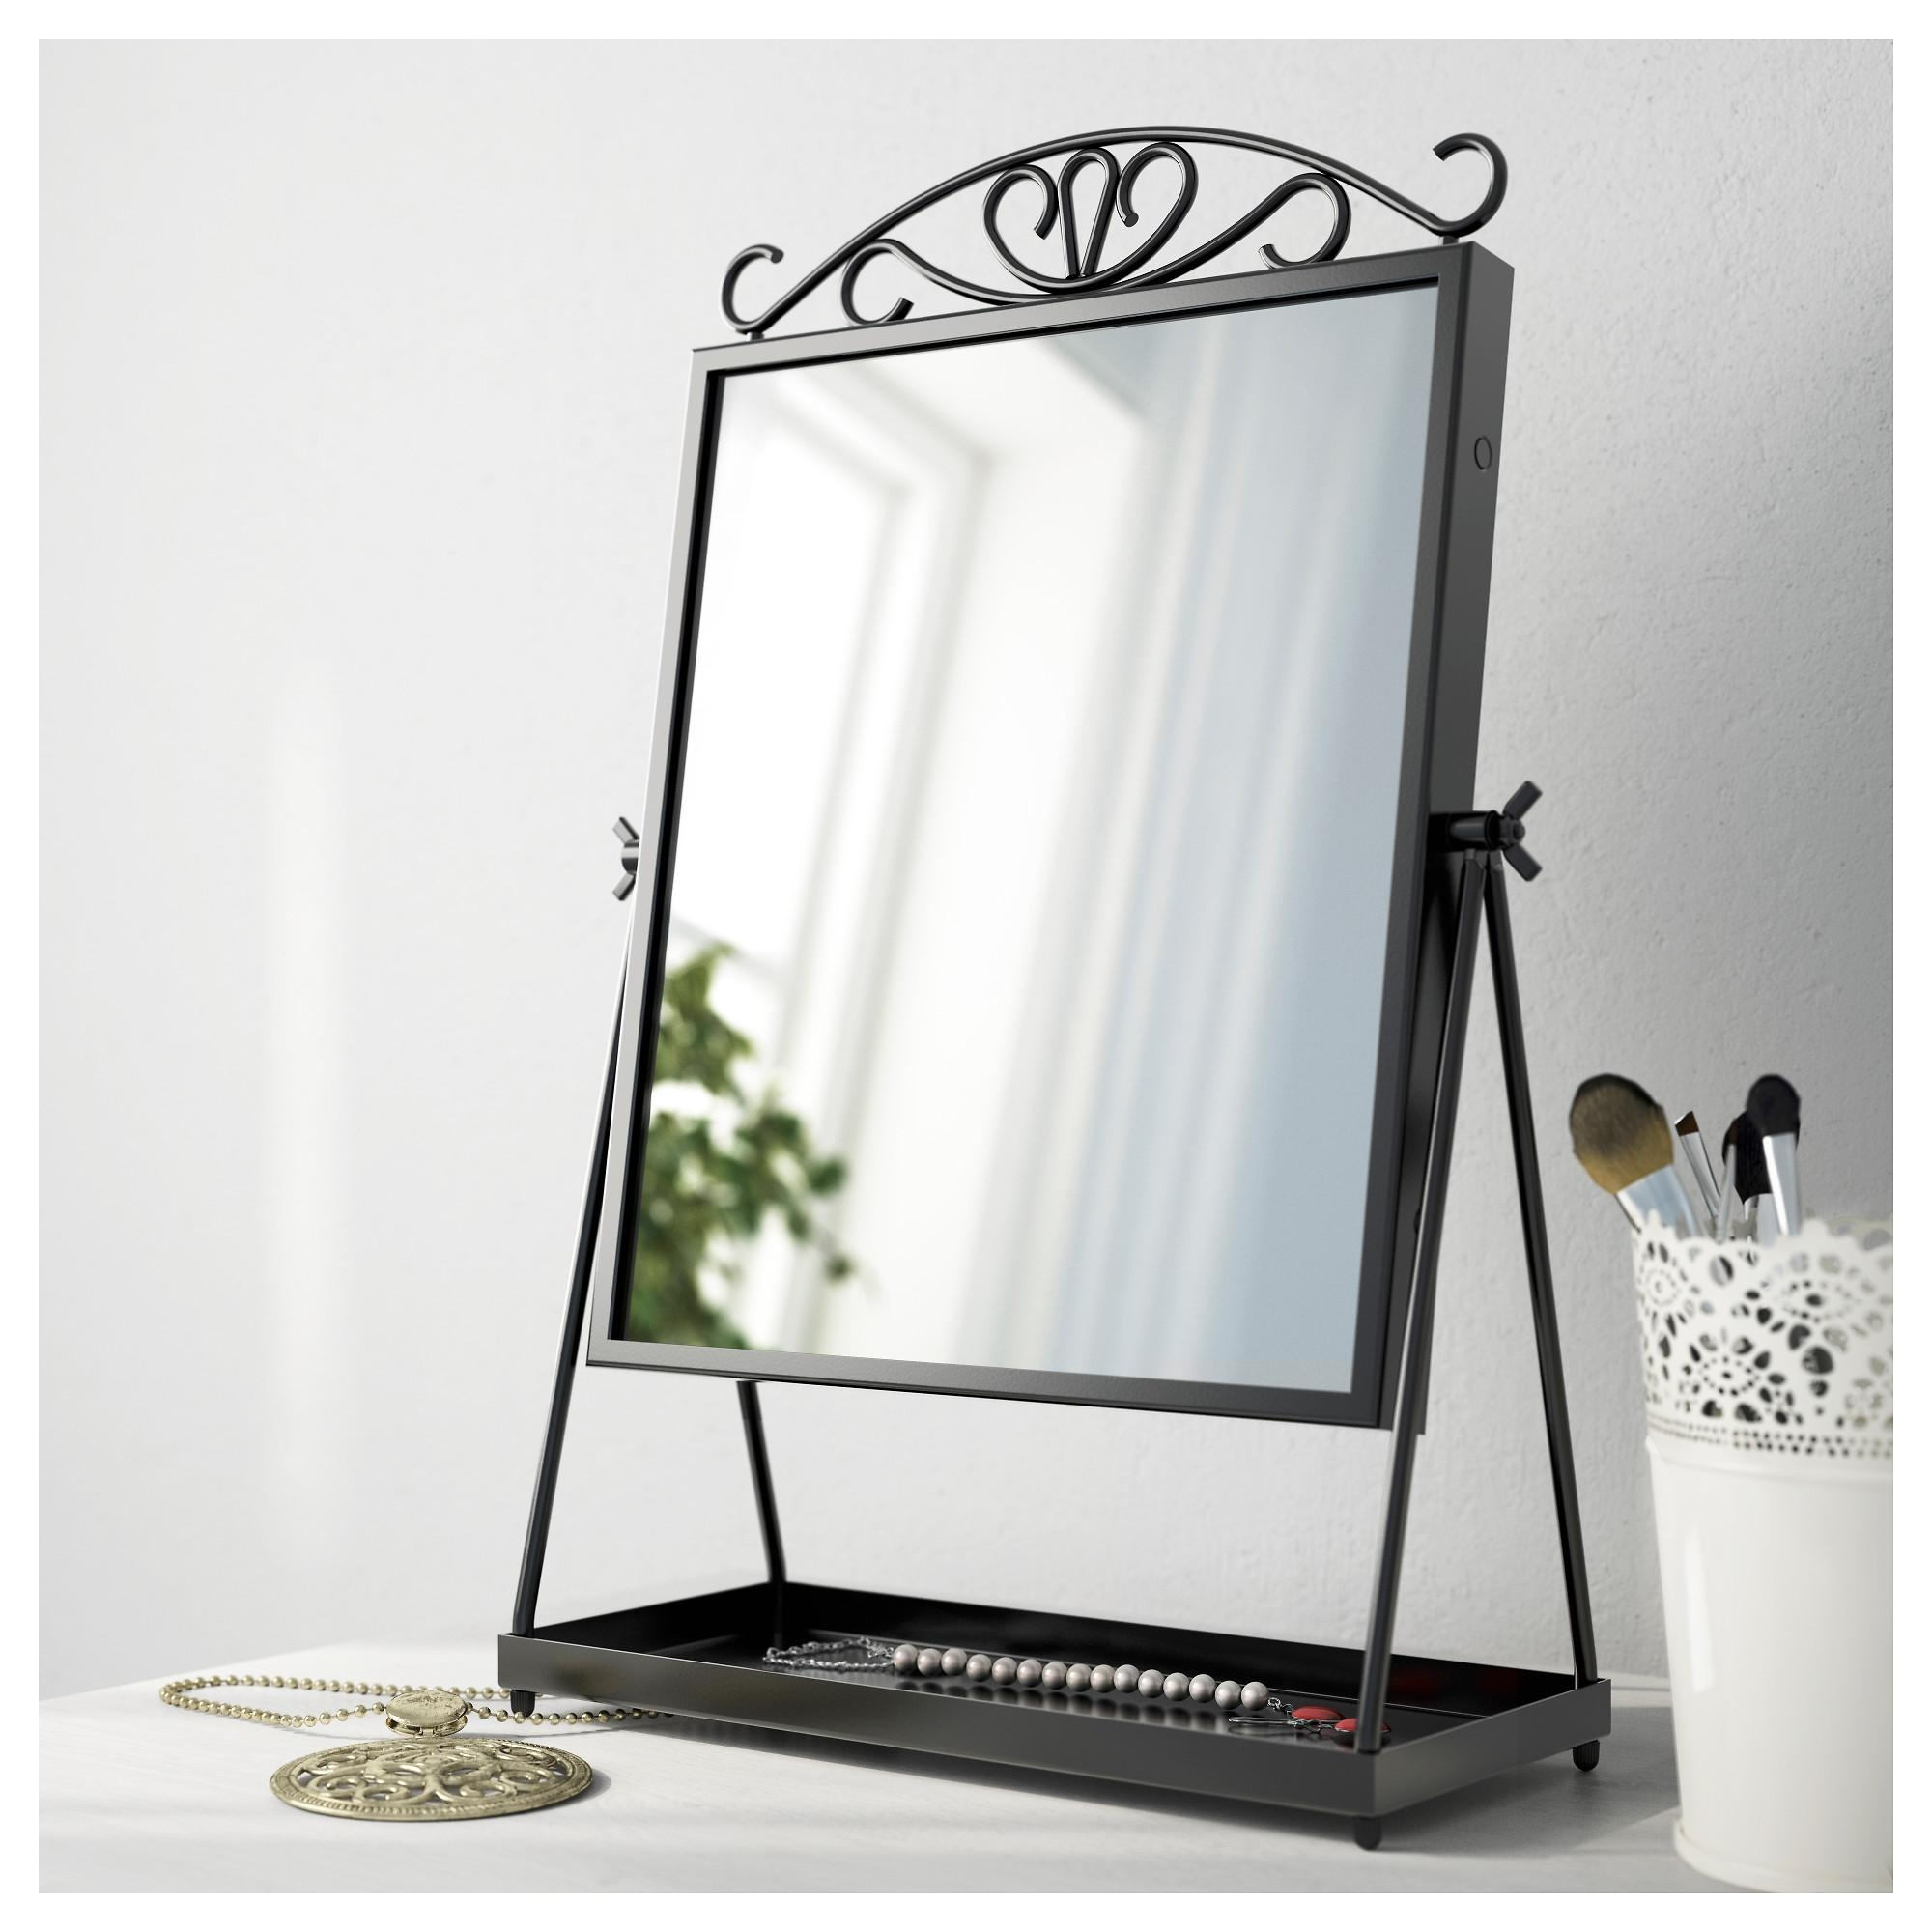 Karmsund Table Mirror – Ikea With Free Standing Table Mirror (Image 9 of 20)